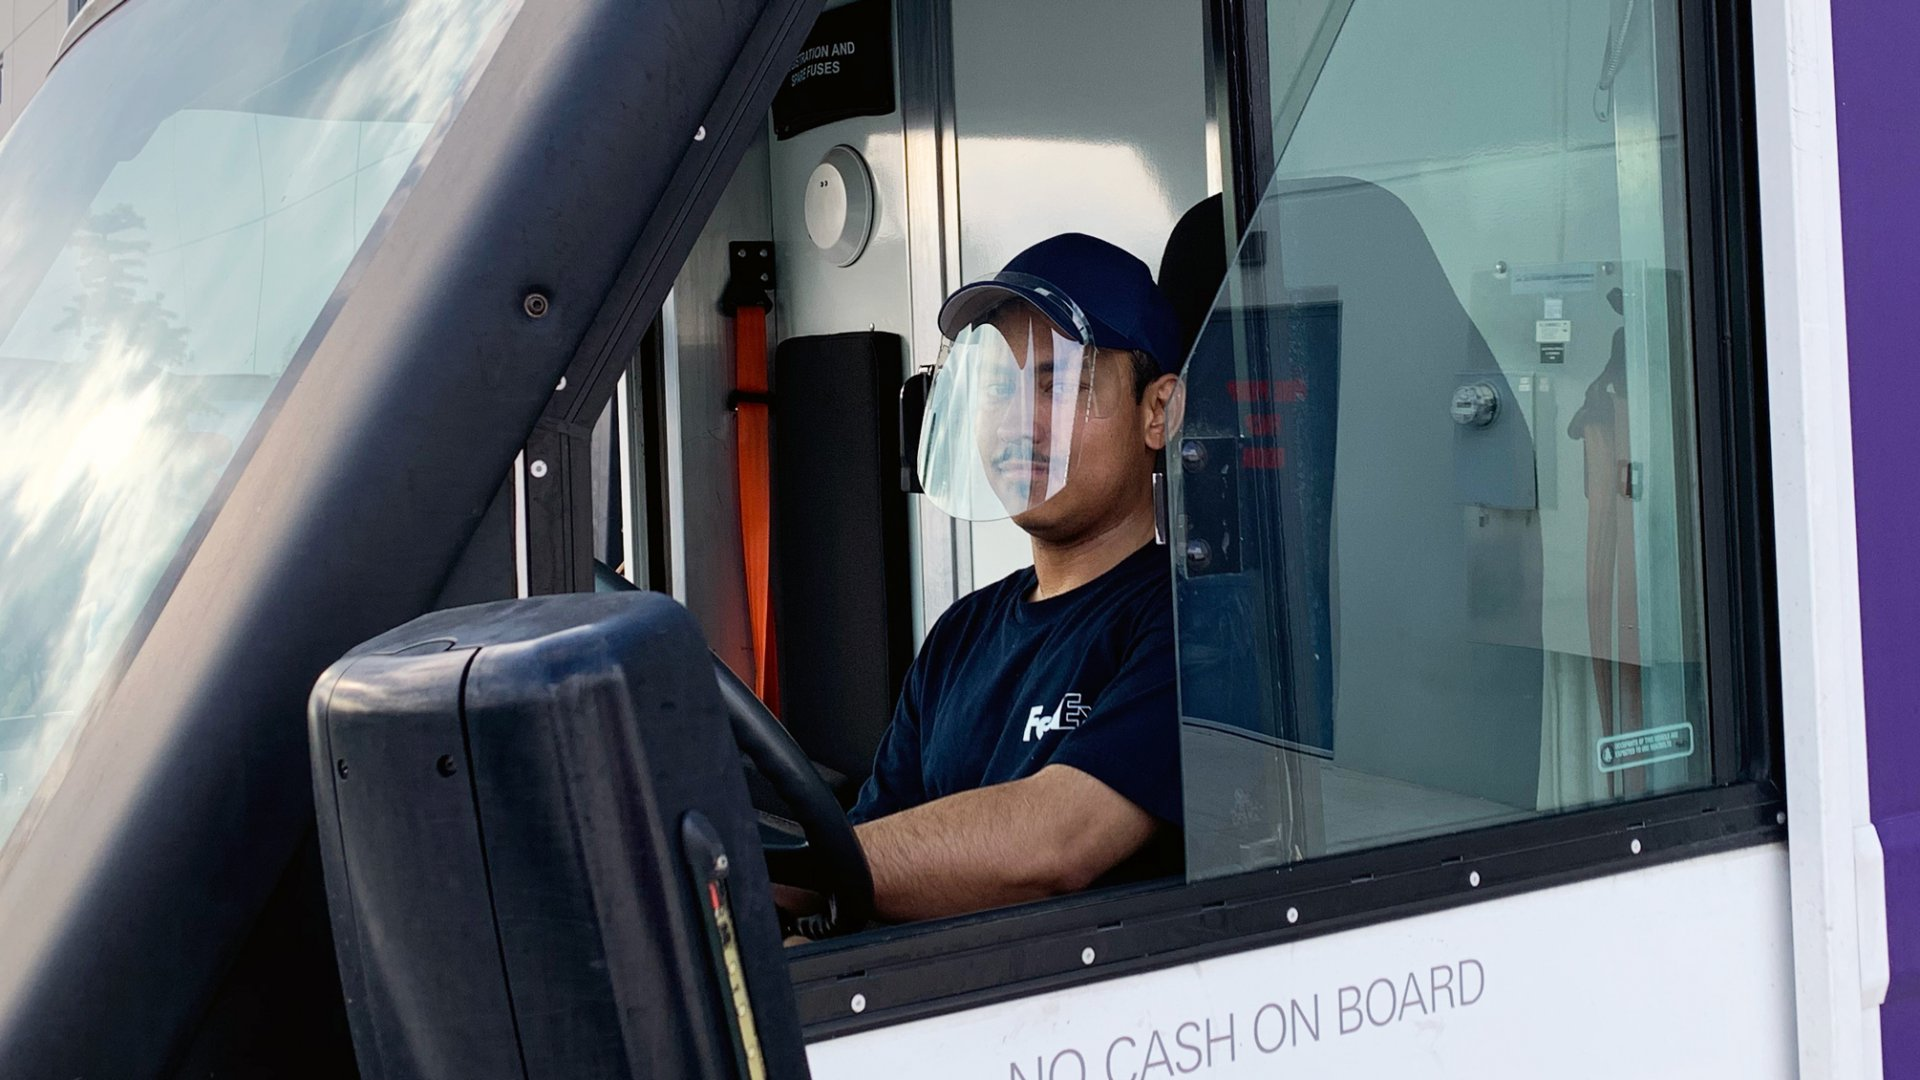 A FedEx employee wears a baseball cap face shield designed by Loggerhead Tools founder Dan Brown.